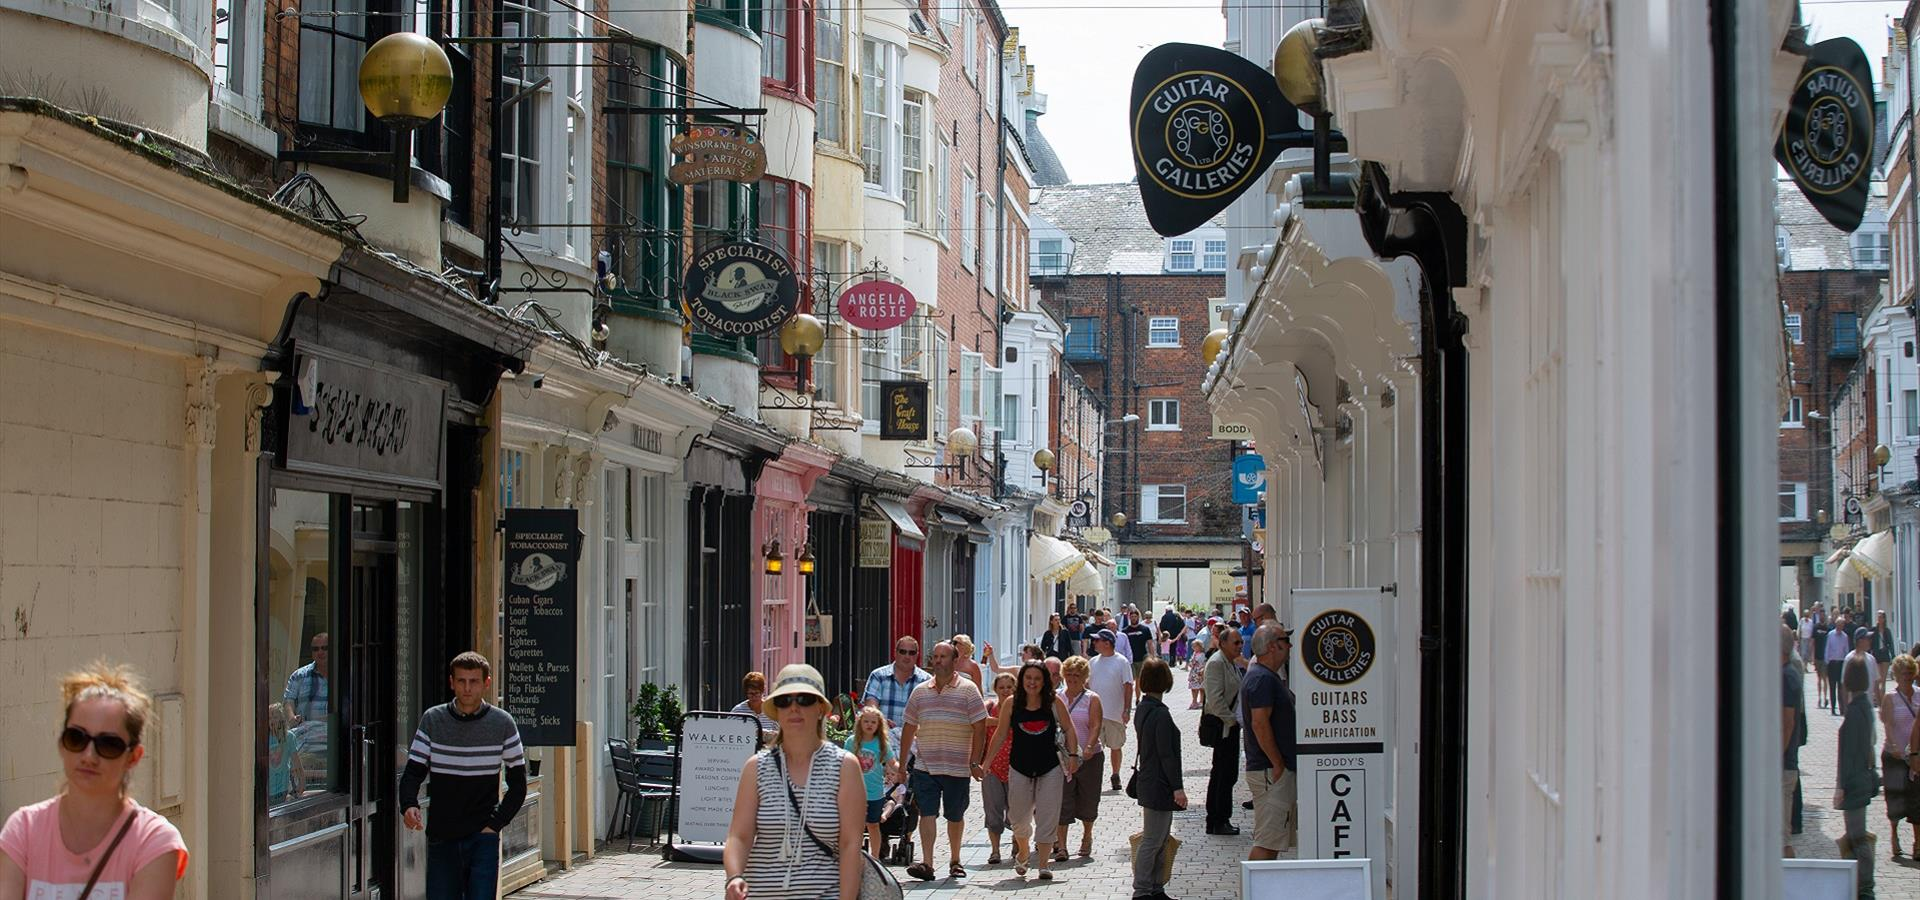 An image of Bar Street Shopping, Scarborough by Ravage Productions